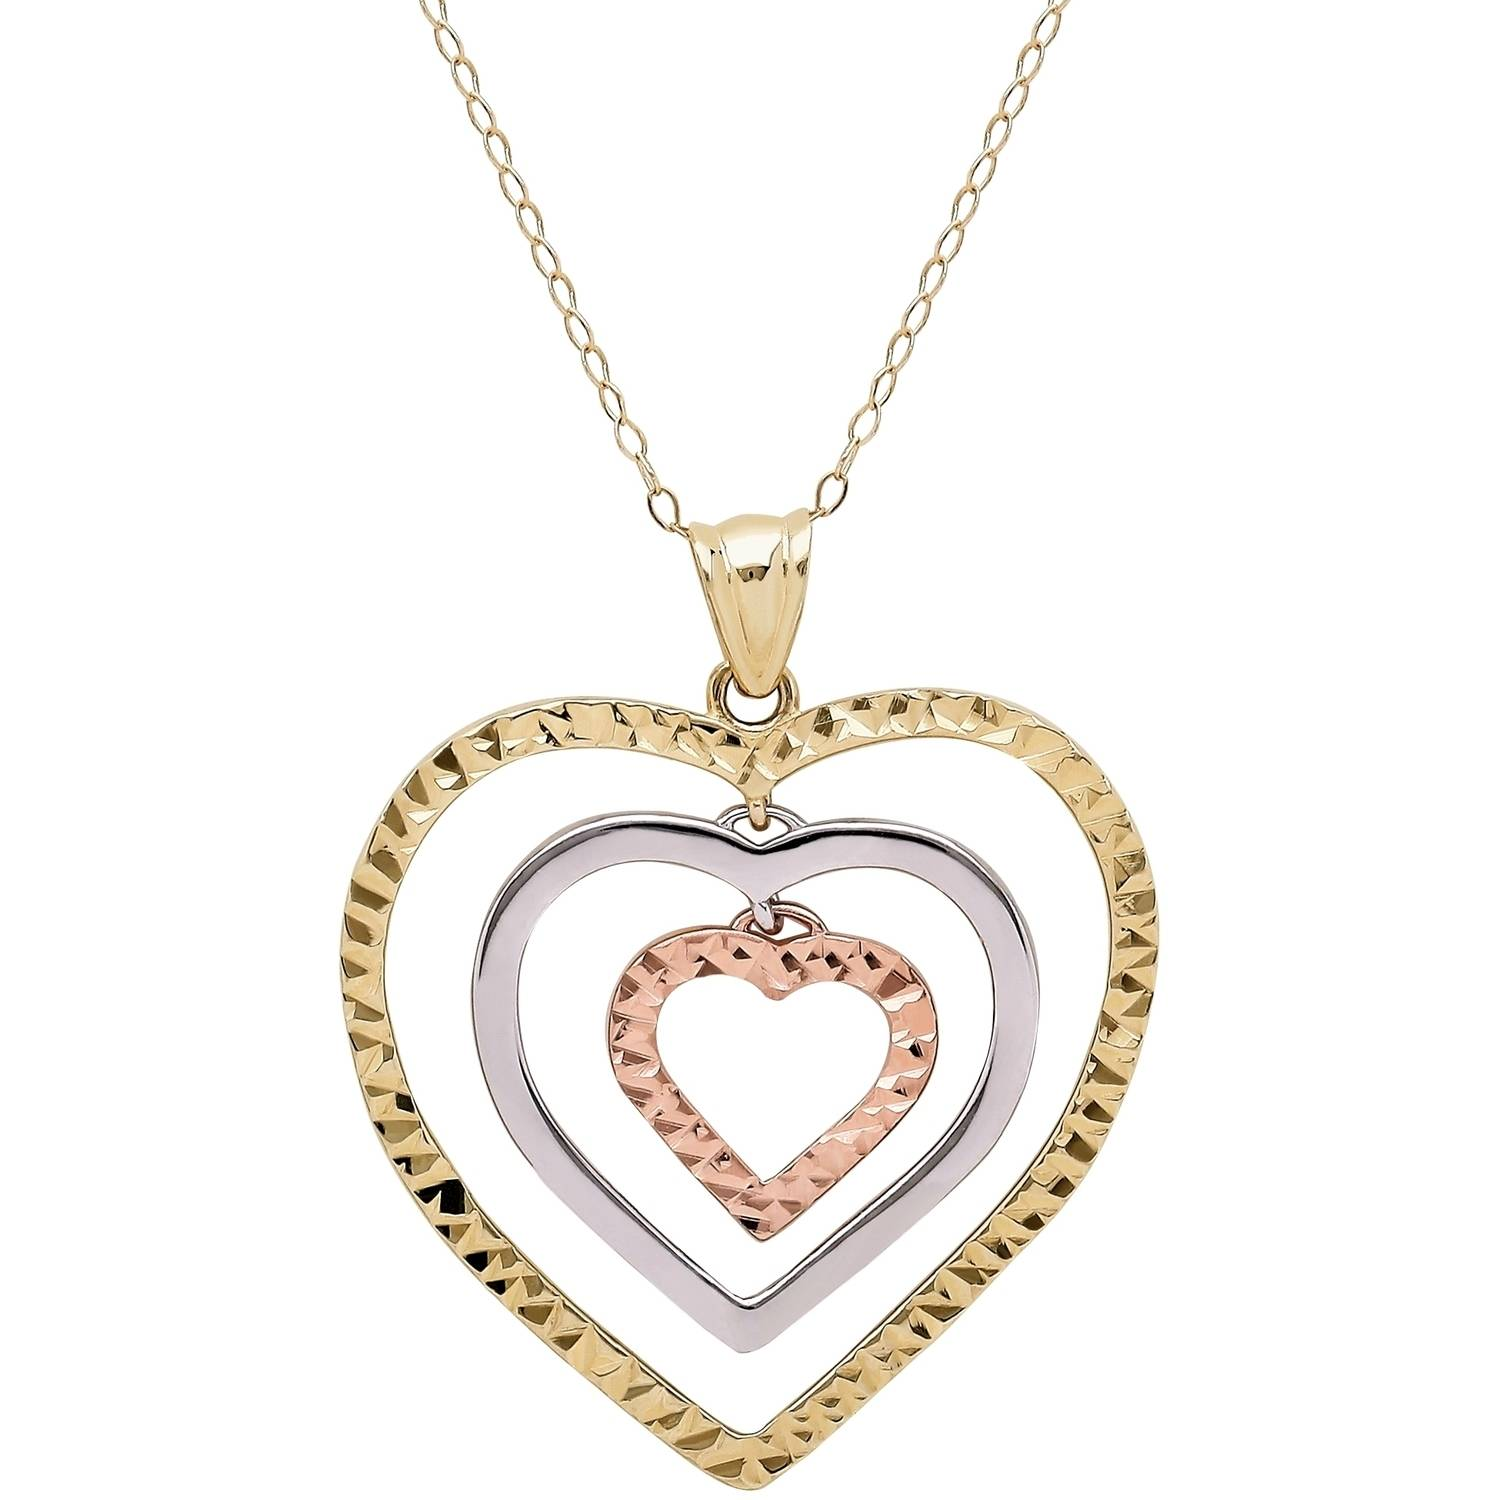 Simply Gold 10kt Yellow, White and Pink Gold Triple Open Heart Pendant by Richline Group Inc